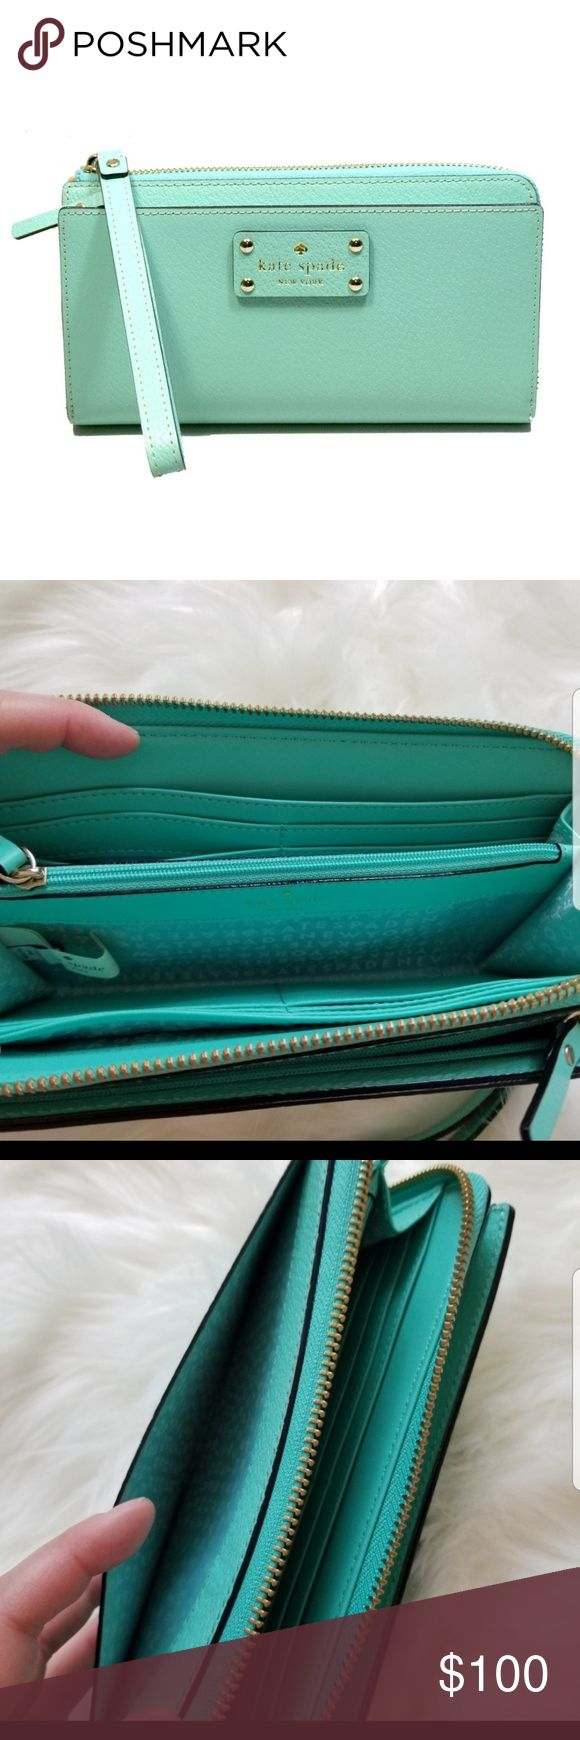 New Kate Spade wallet. Brand new with tag. Color freshair. 12 credit card slots….